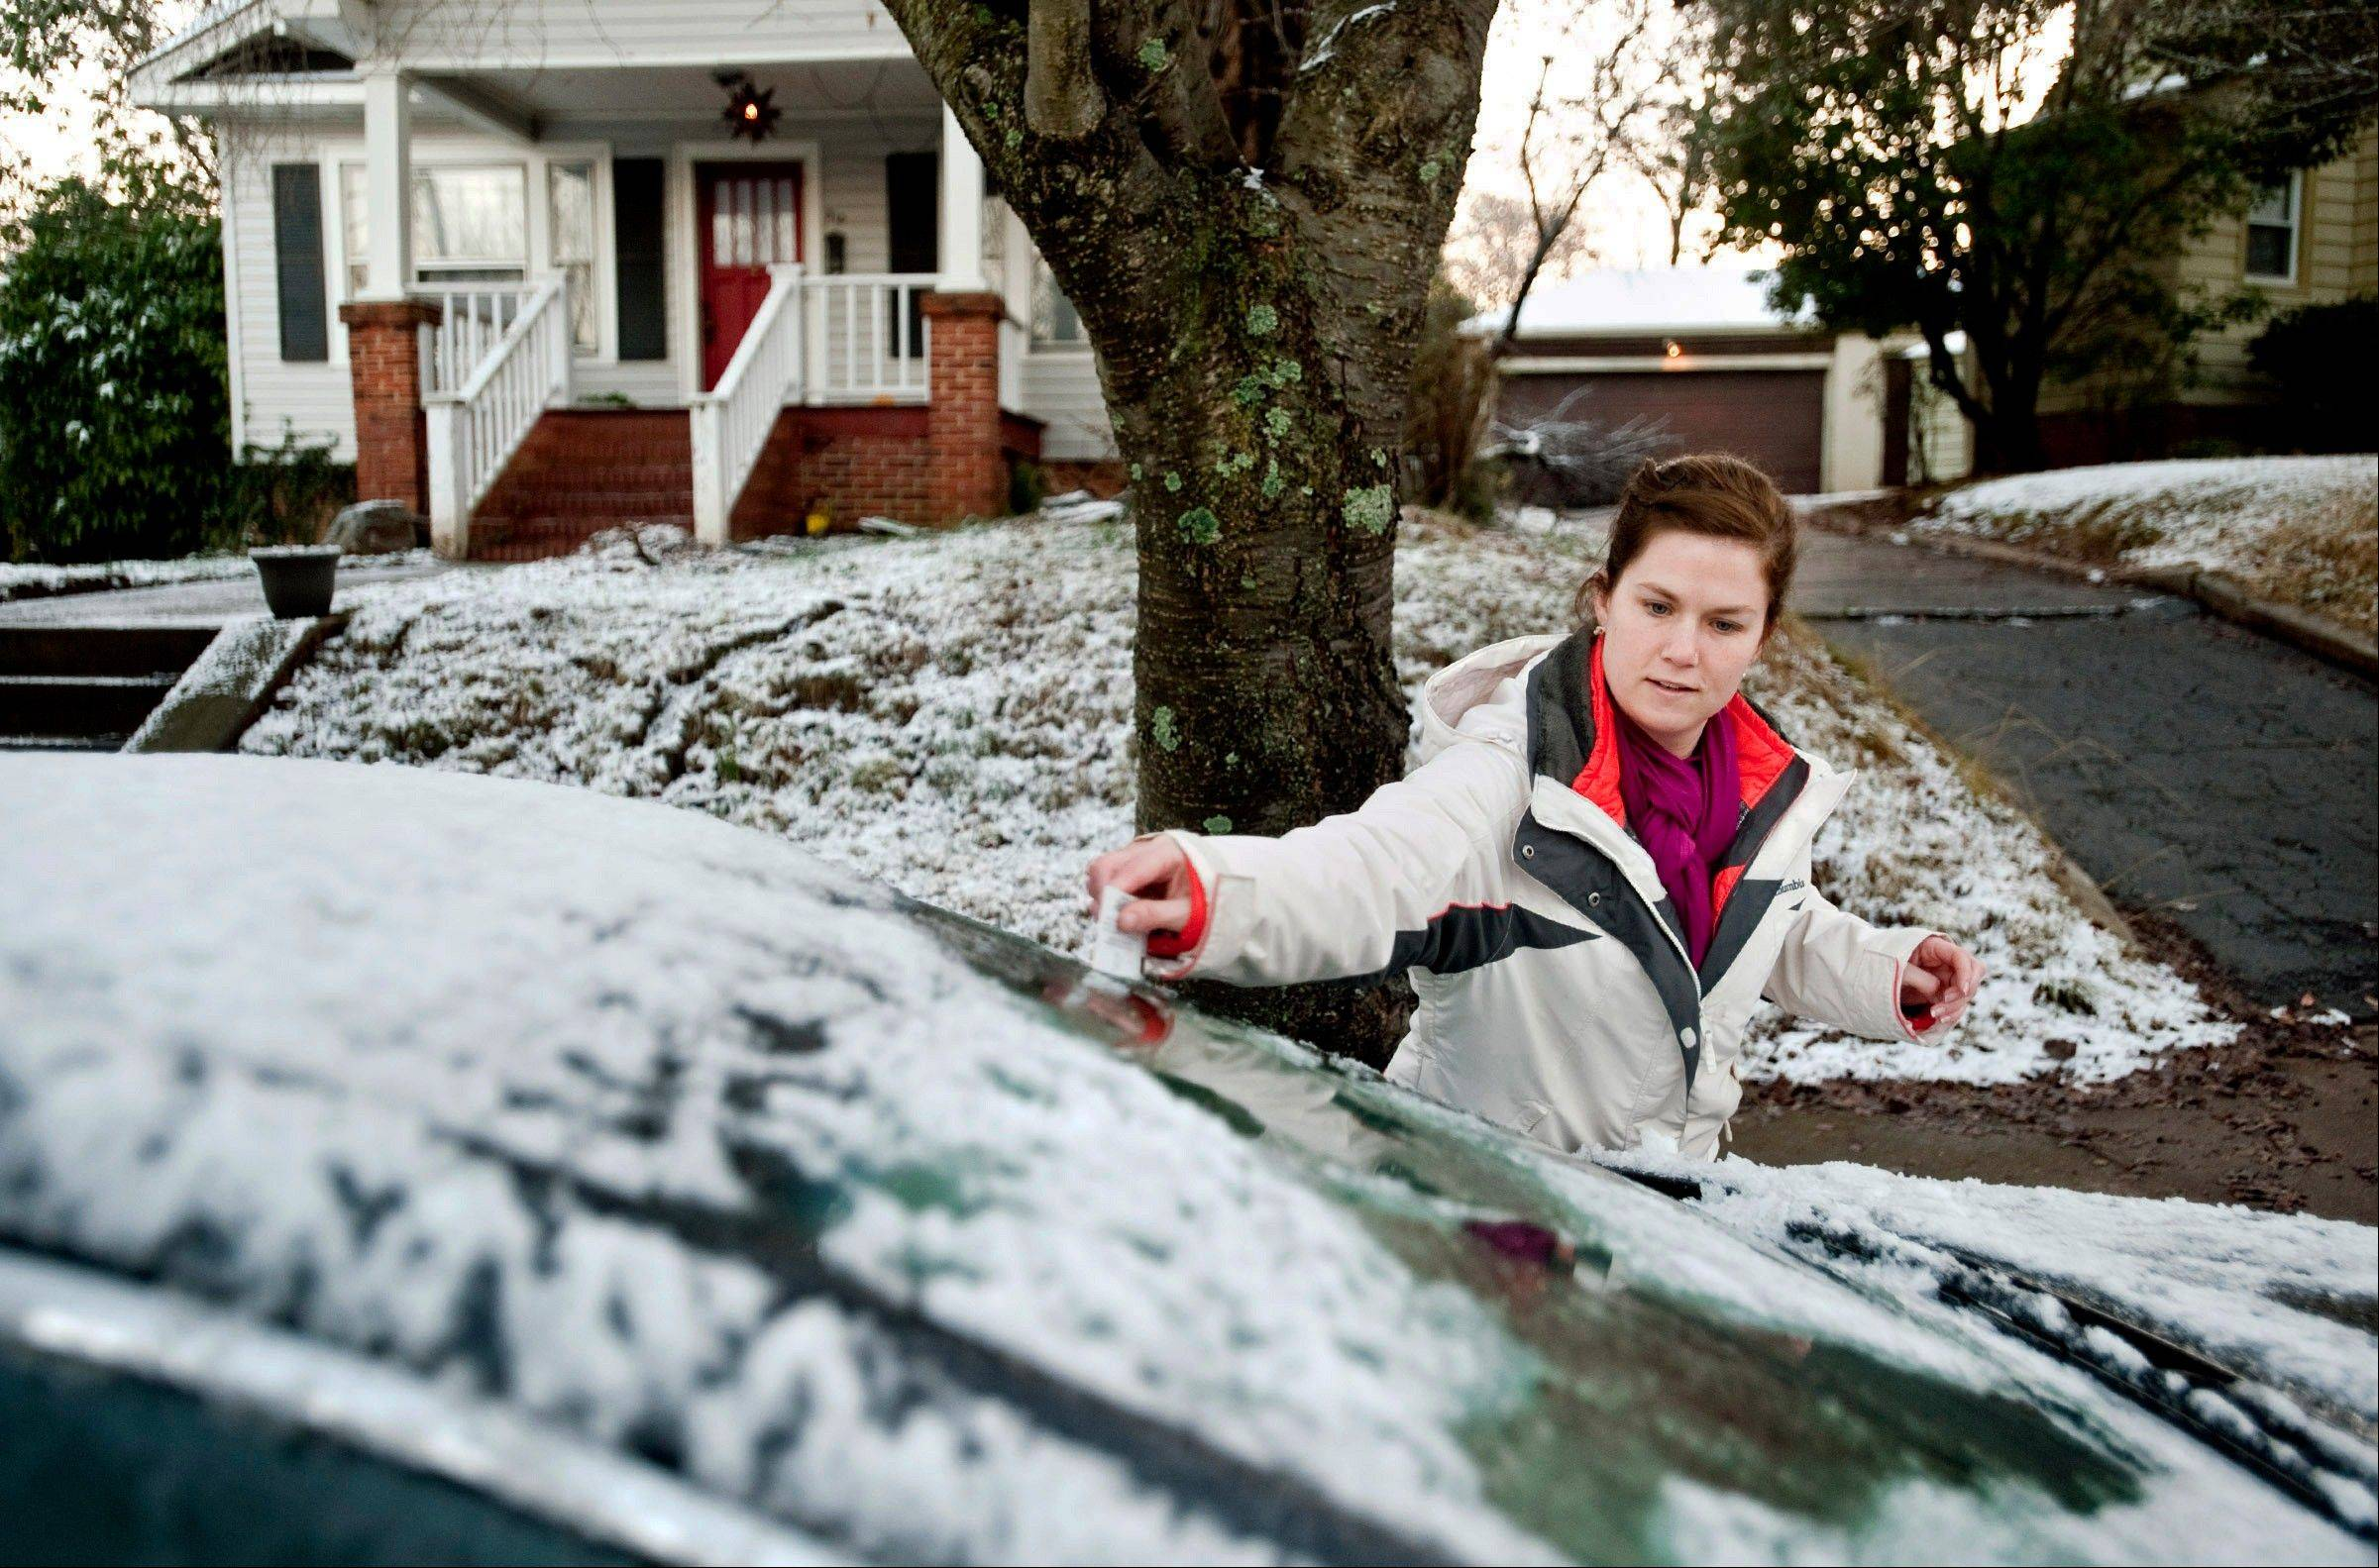 Erin Hull, of Winston-Salem, uses gift cards from her wallet to scrape ice and snow off her car before going to work Friday, Jan. 18, 2013, in Winston-Salem, N.C. Hull says she would have used her ice scraper, but it was inside her frozen-shut trunk.